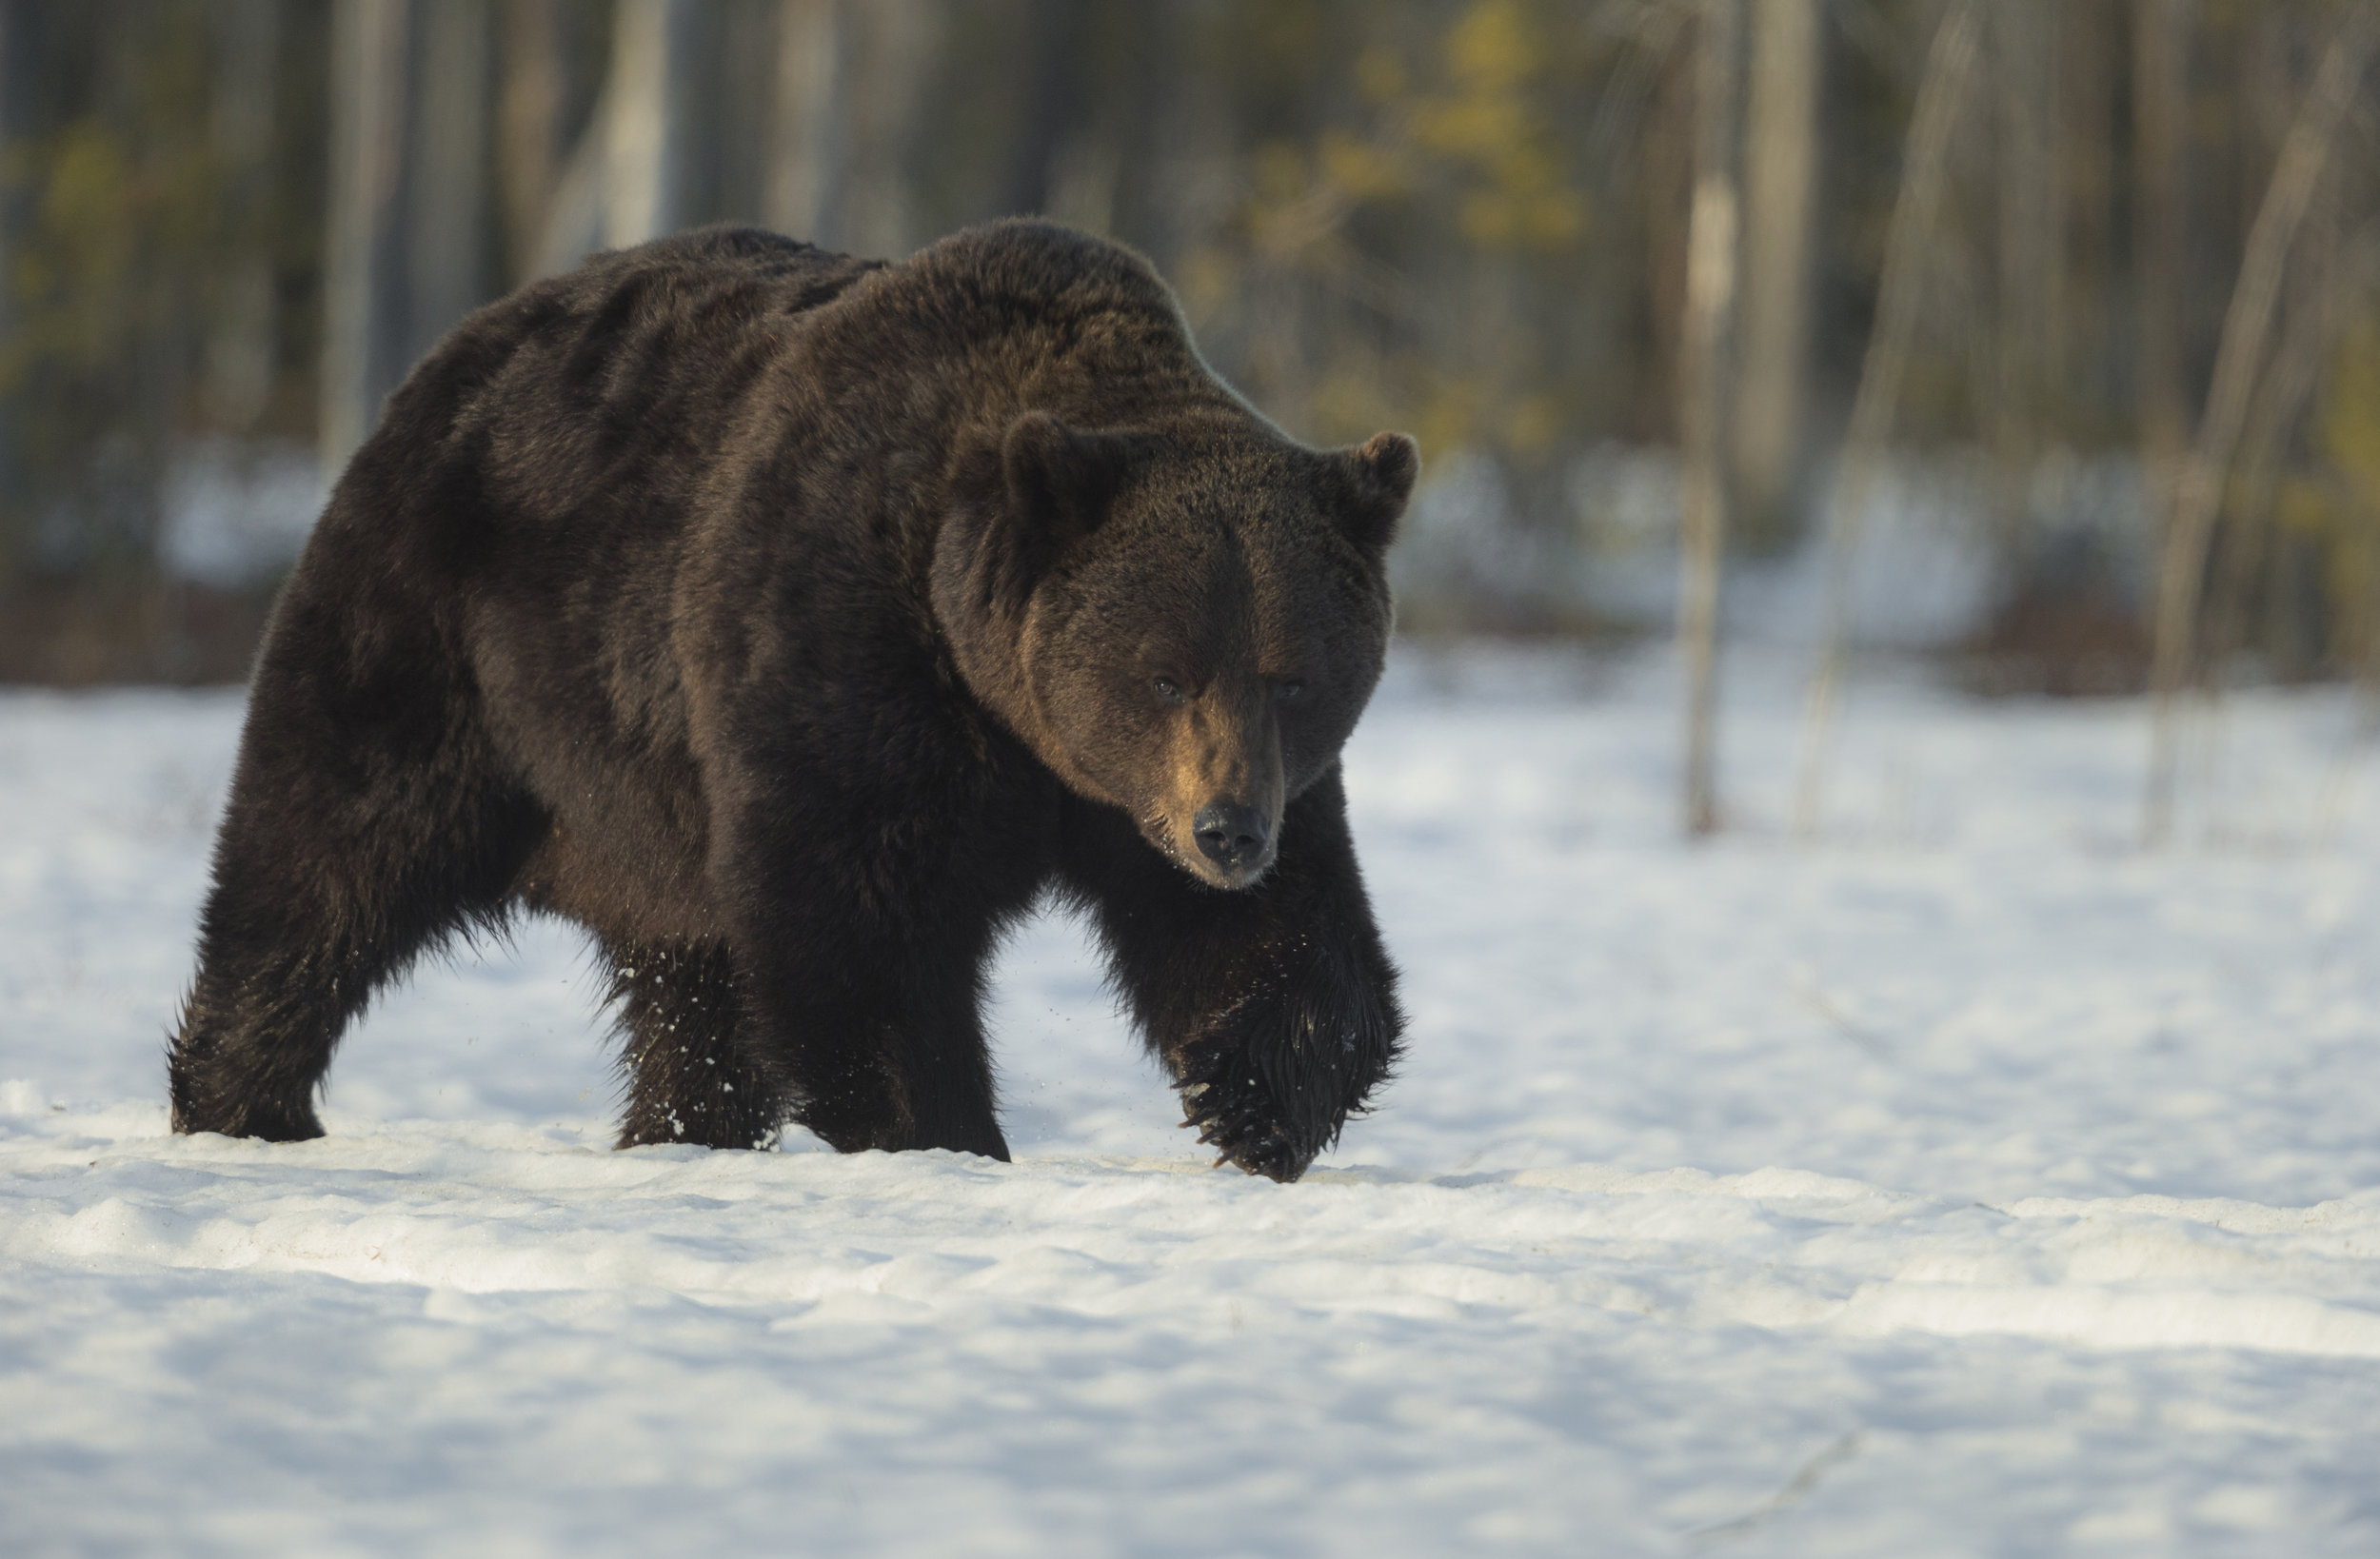 The large bold male Bear strolls determined, on a thin crust of snow.